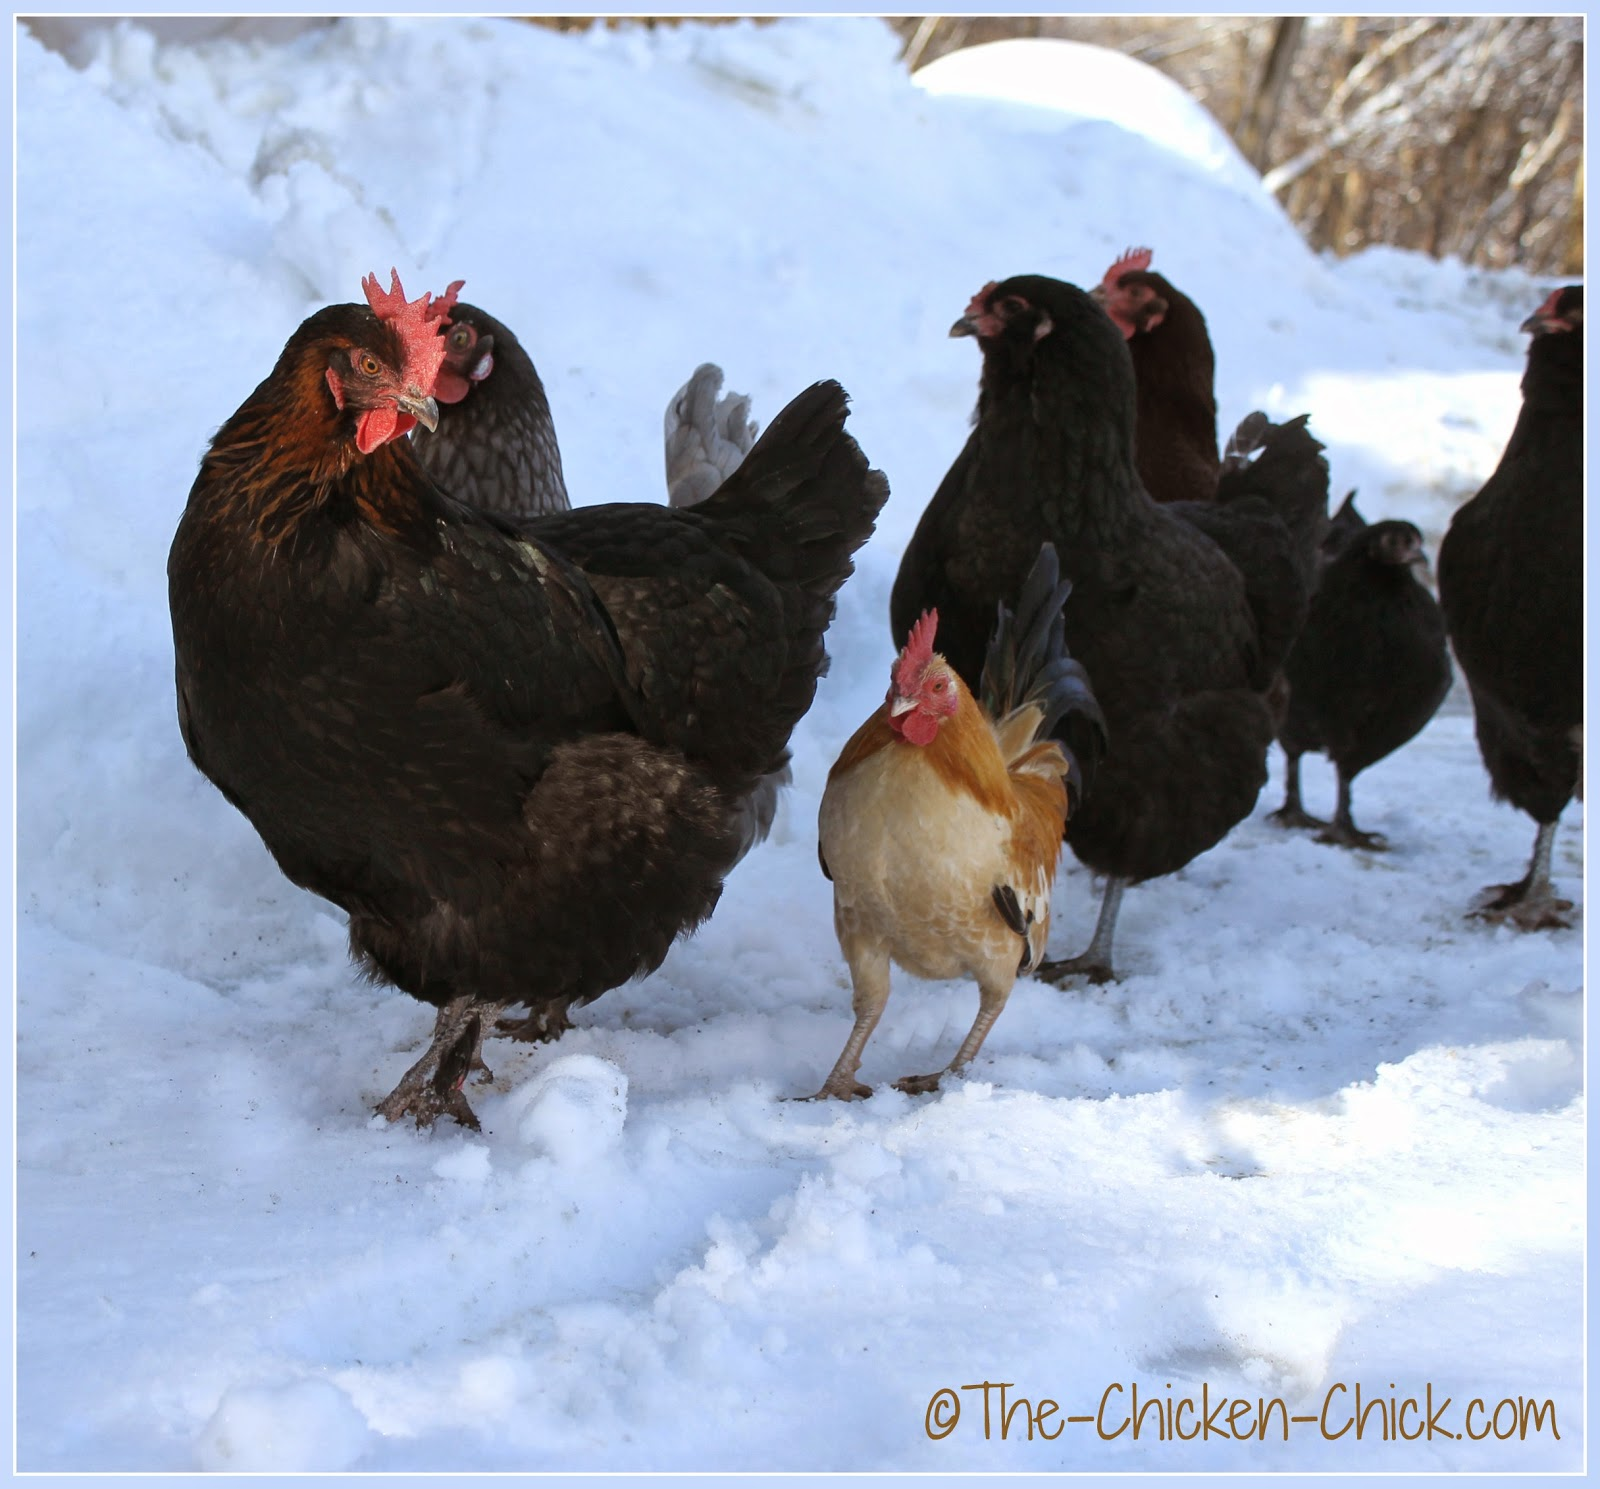 Chickens exploring the snow